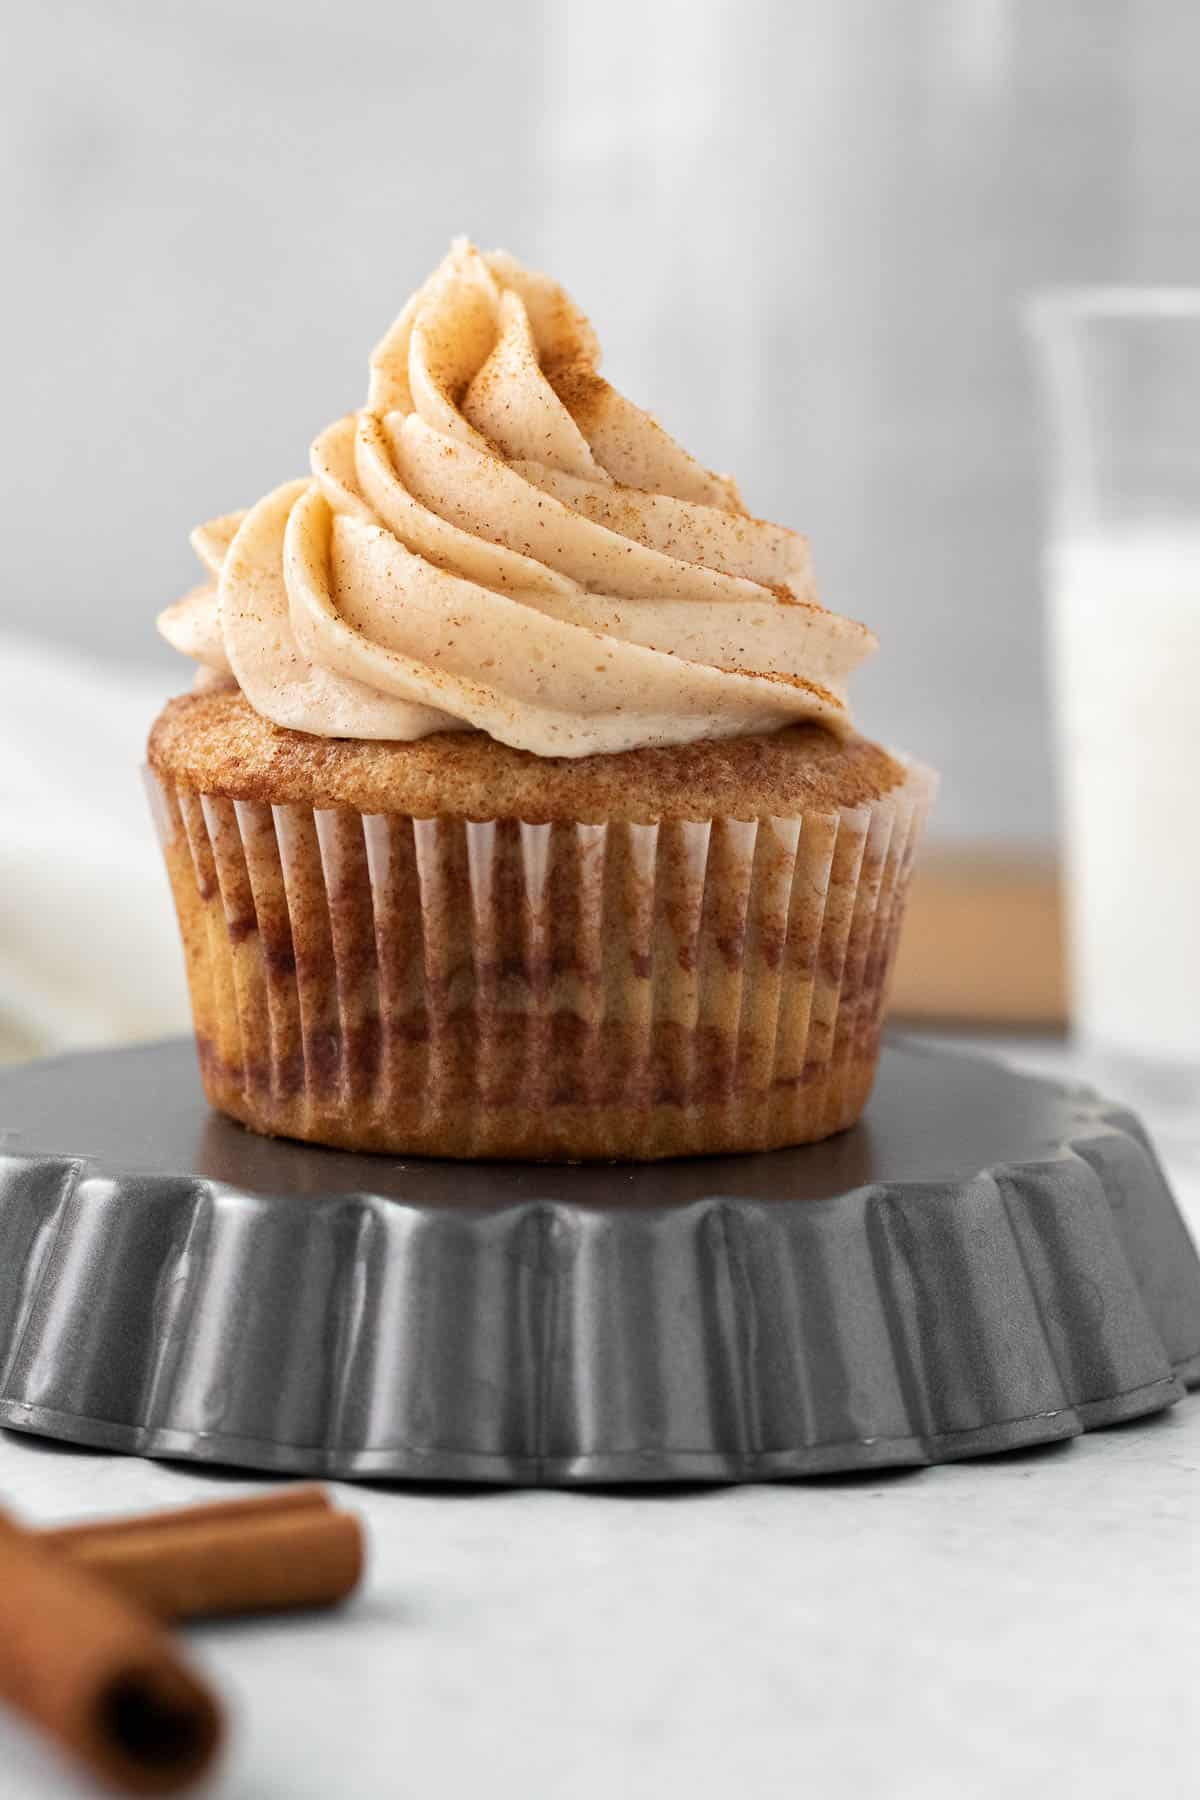 cinnamon cupcake with cinnamon buttercream sitting on an upside down tart pan with a glass of milk in the background